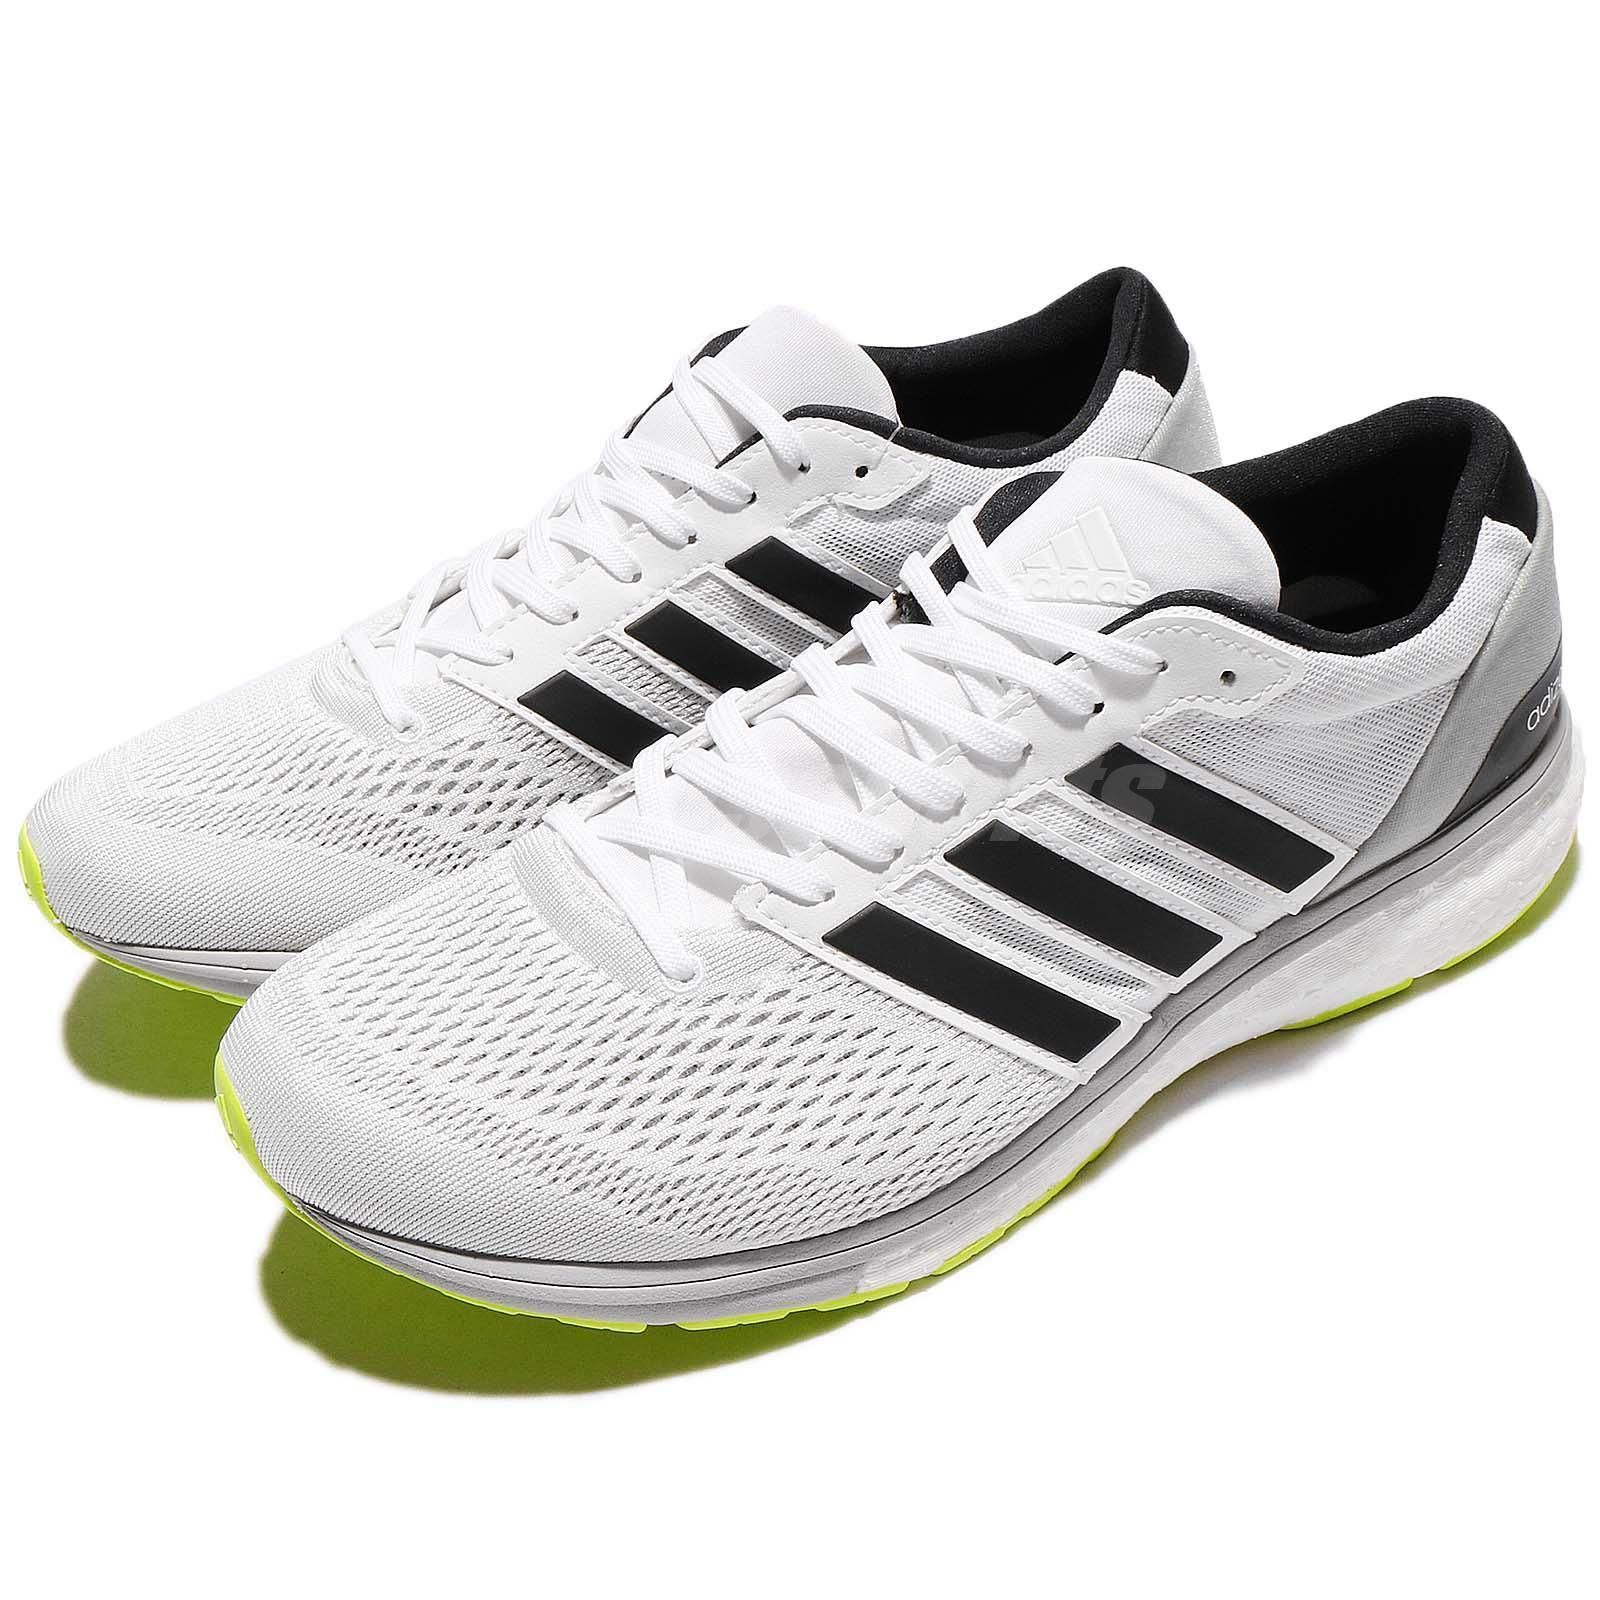 look for 1ea58 1bd6a adidas Adizero Boston 6 M White Black Green BOOST Men Running Shoes CG3142